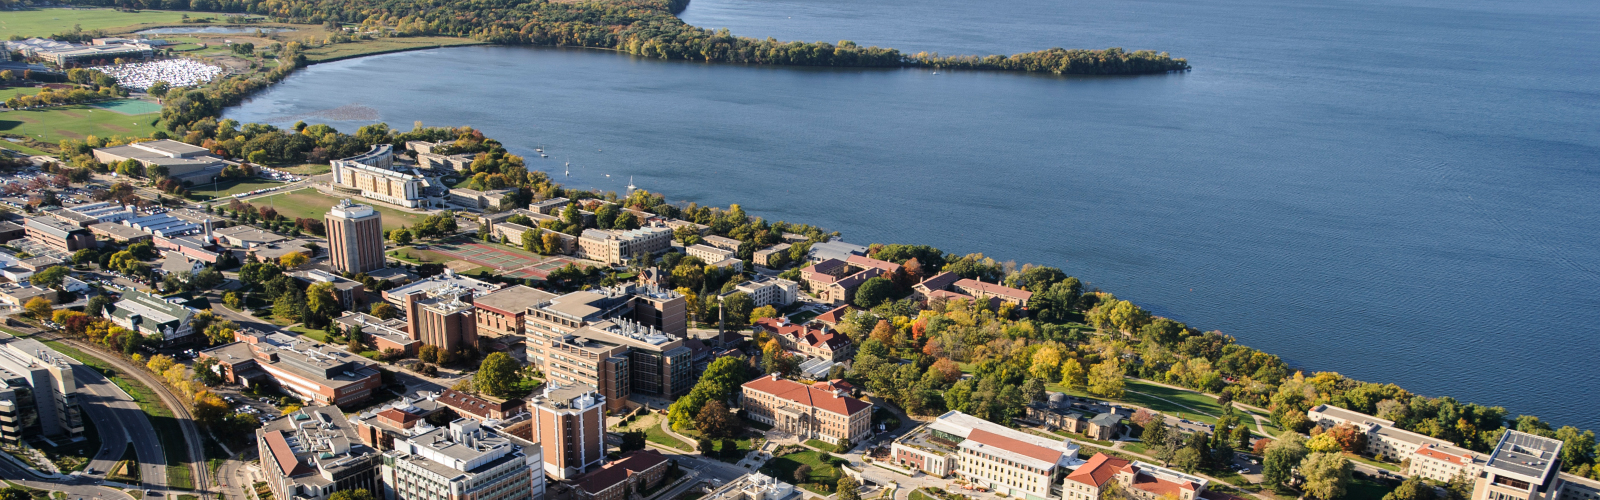 The central and lakeshore area of the University of Wisconsin-Madison campus is pictured in an aerial view during the autumn season.